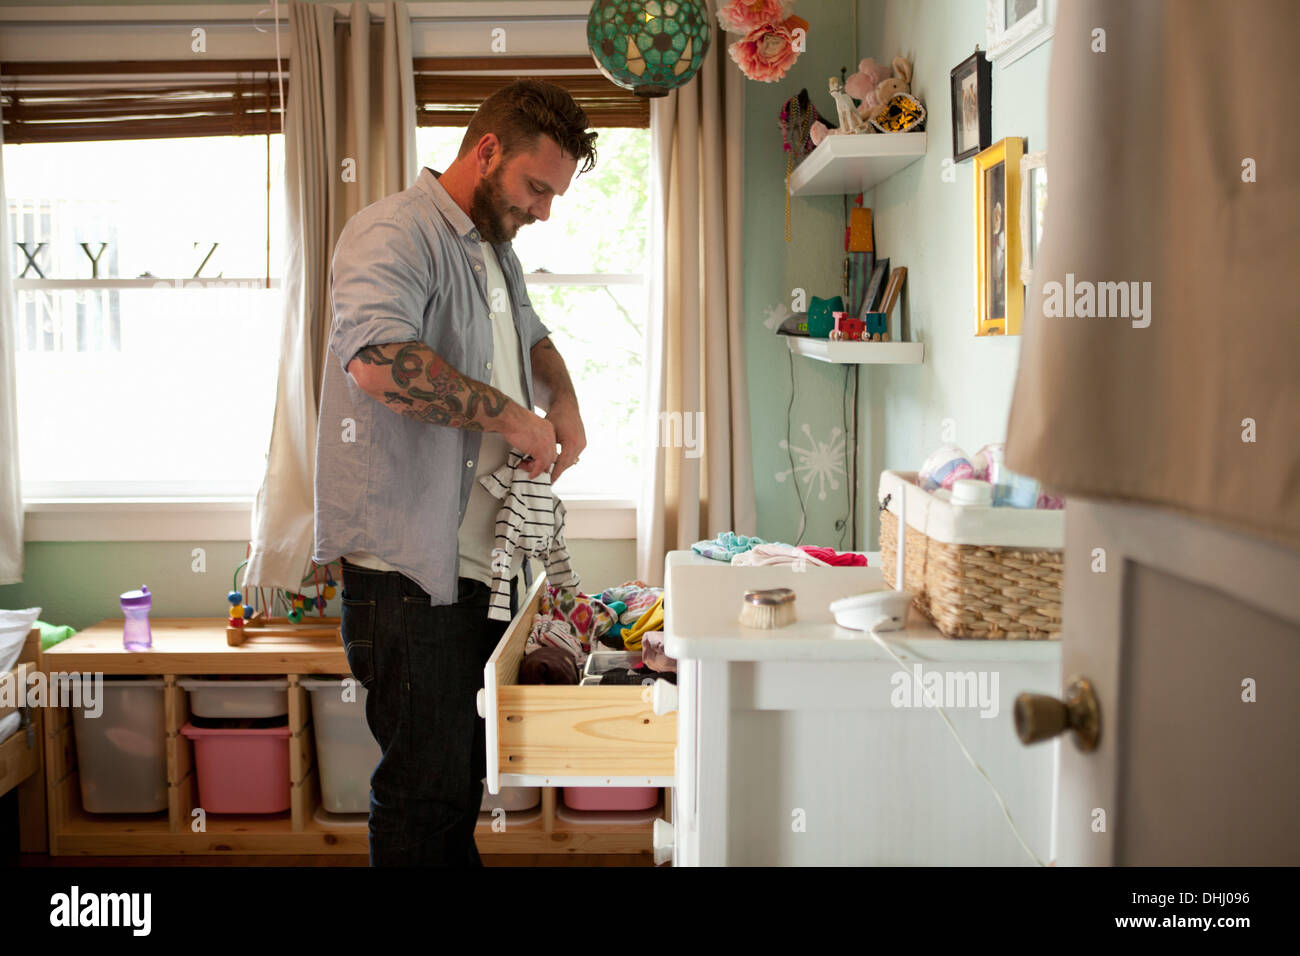 Father putting away child's laundry - Stock Image